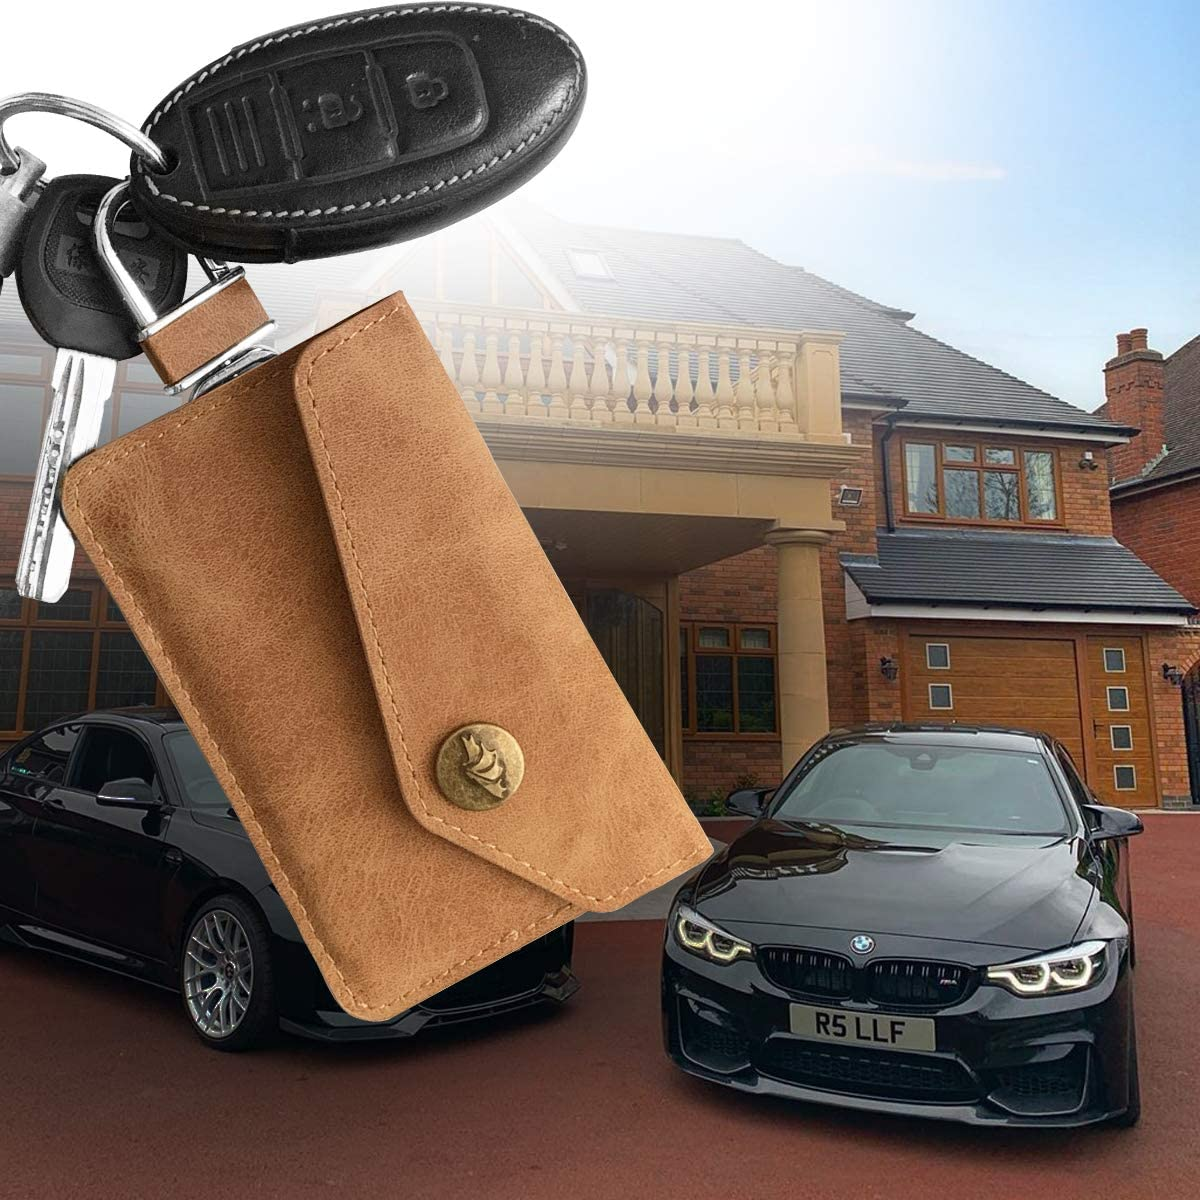 RFID Key Signal Blocking Pouch with Hook Securing Chain MONOJOY 2 Pack faraday pouch Faraday Bag for Keyless Cars| Car Key Signal Blocker Pouch Brown